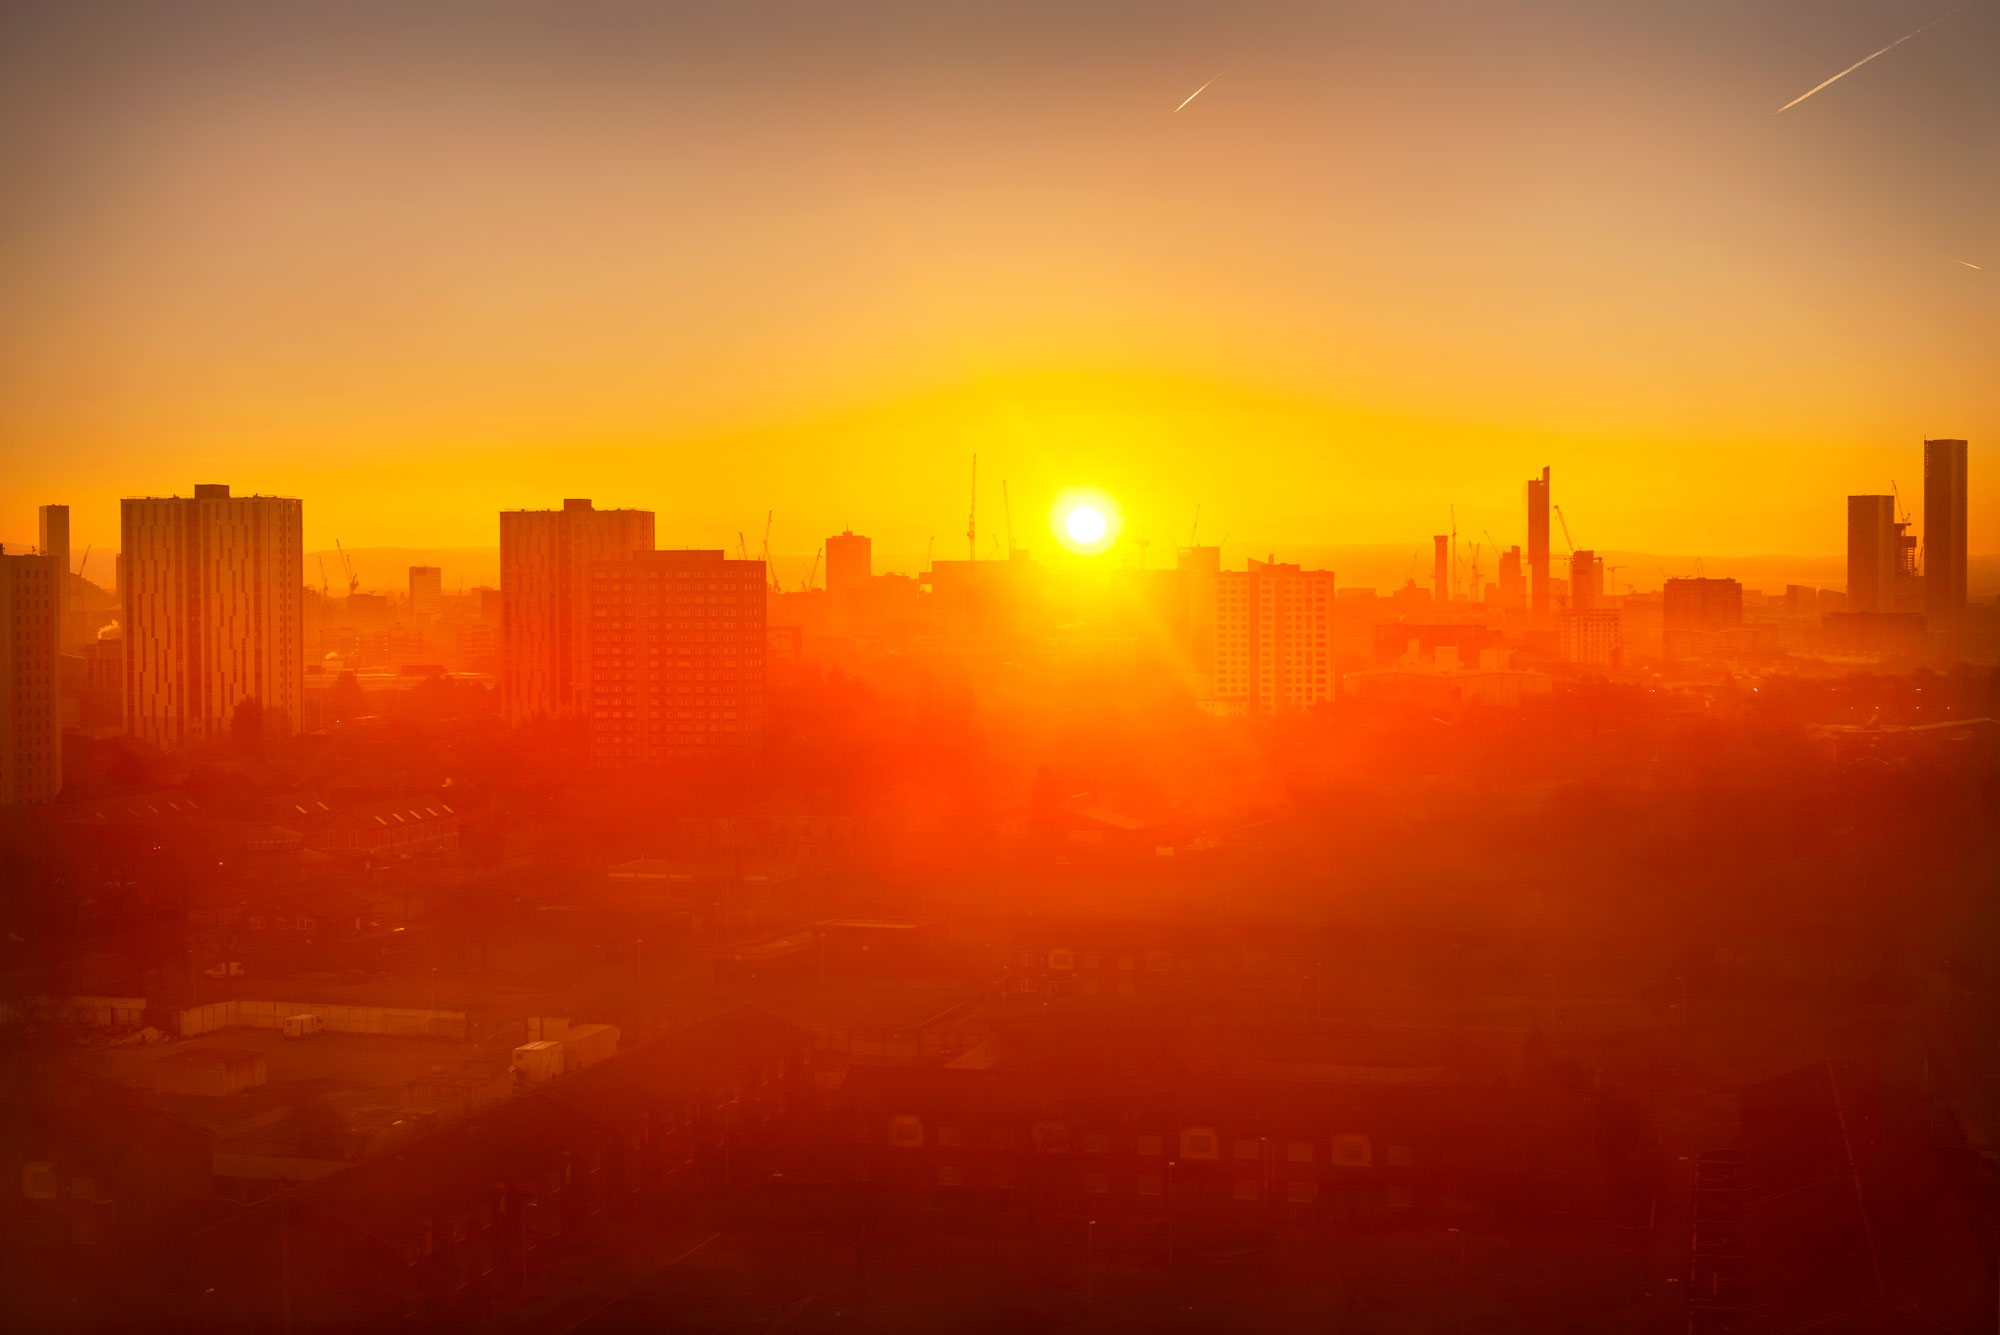 Salford at sunrise, looking towards Manchester